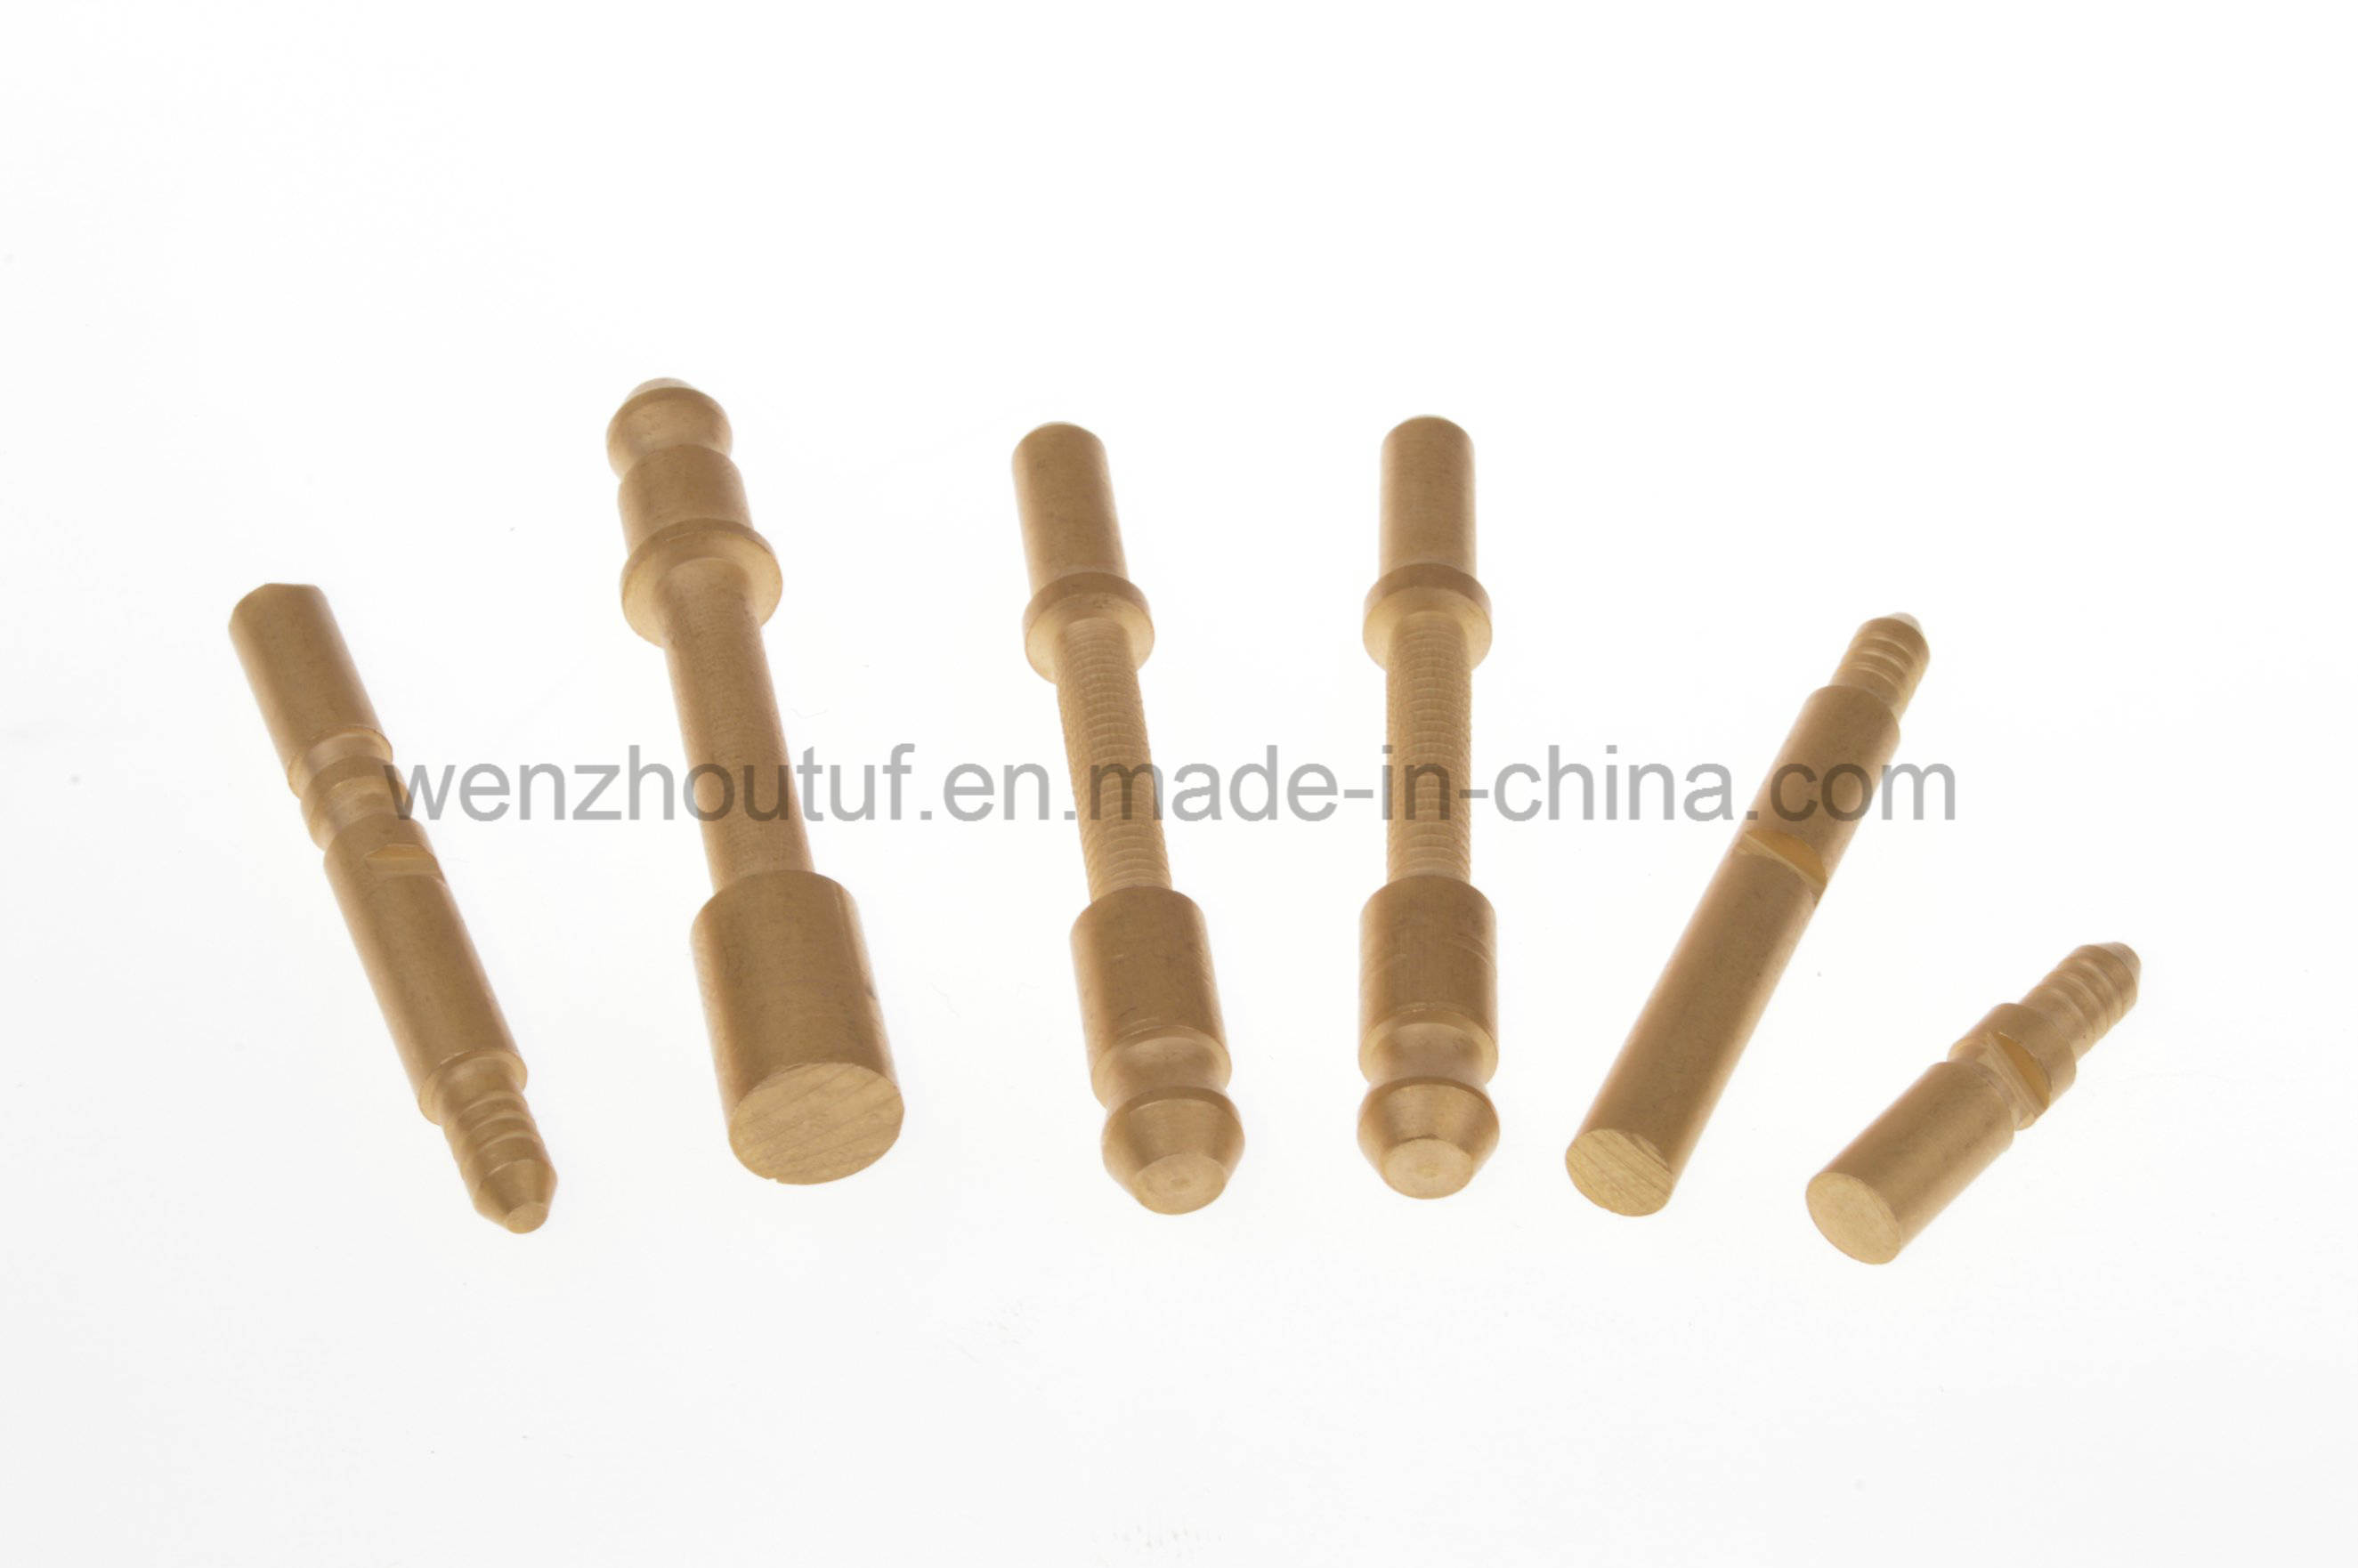 Precision Spade Copper Terminal Copper Terminals Copper Lug Copper Terminal for Electrical Meter